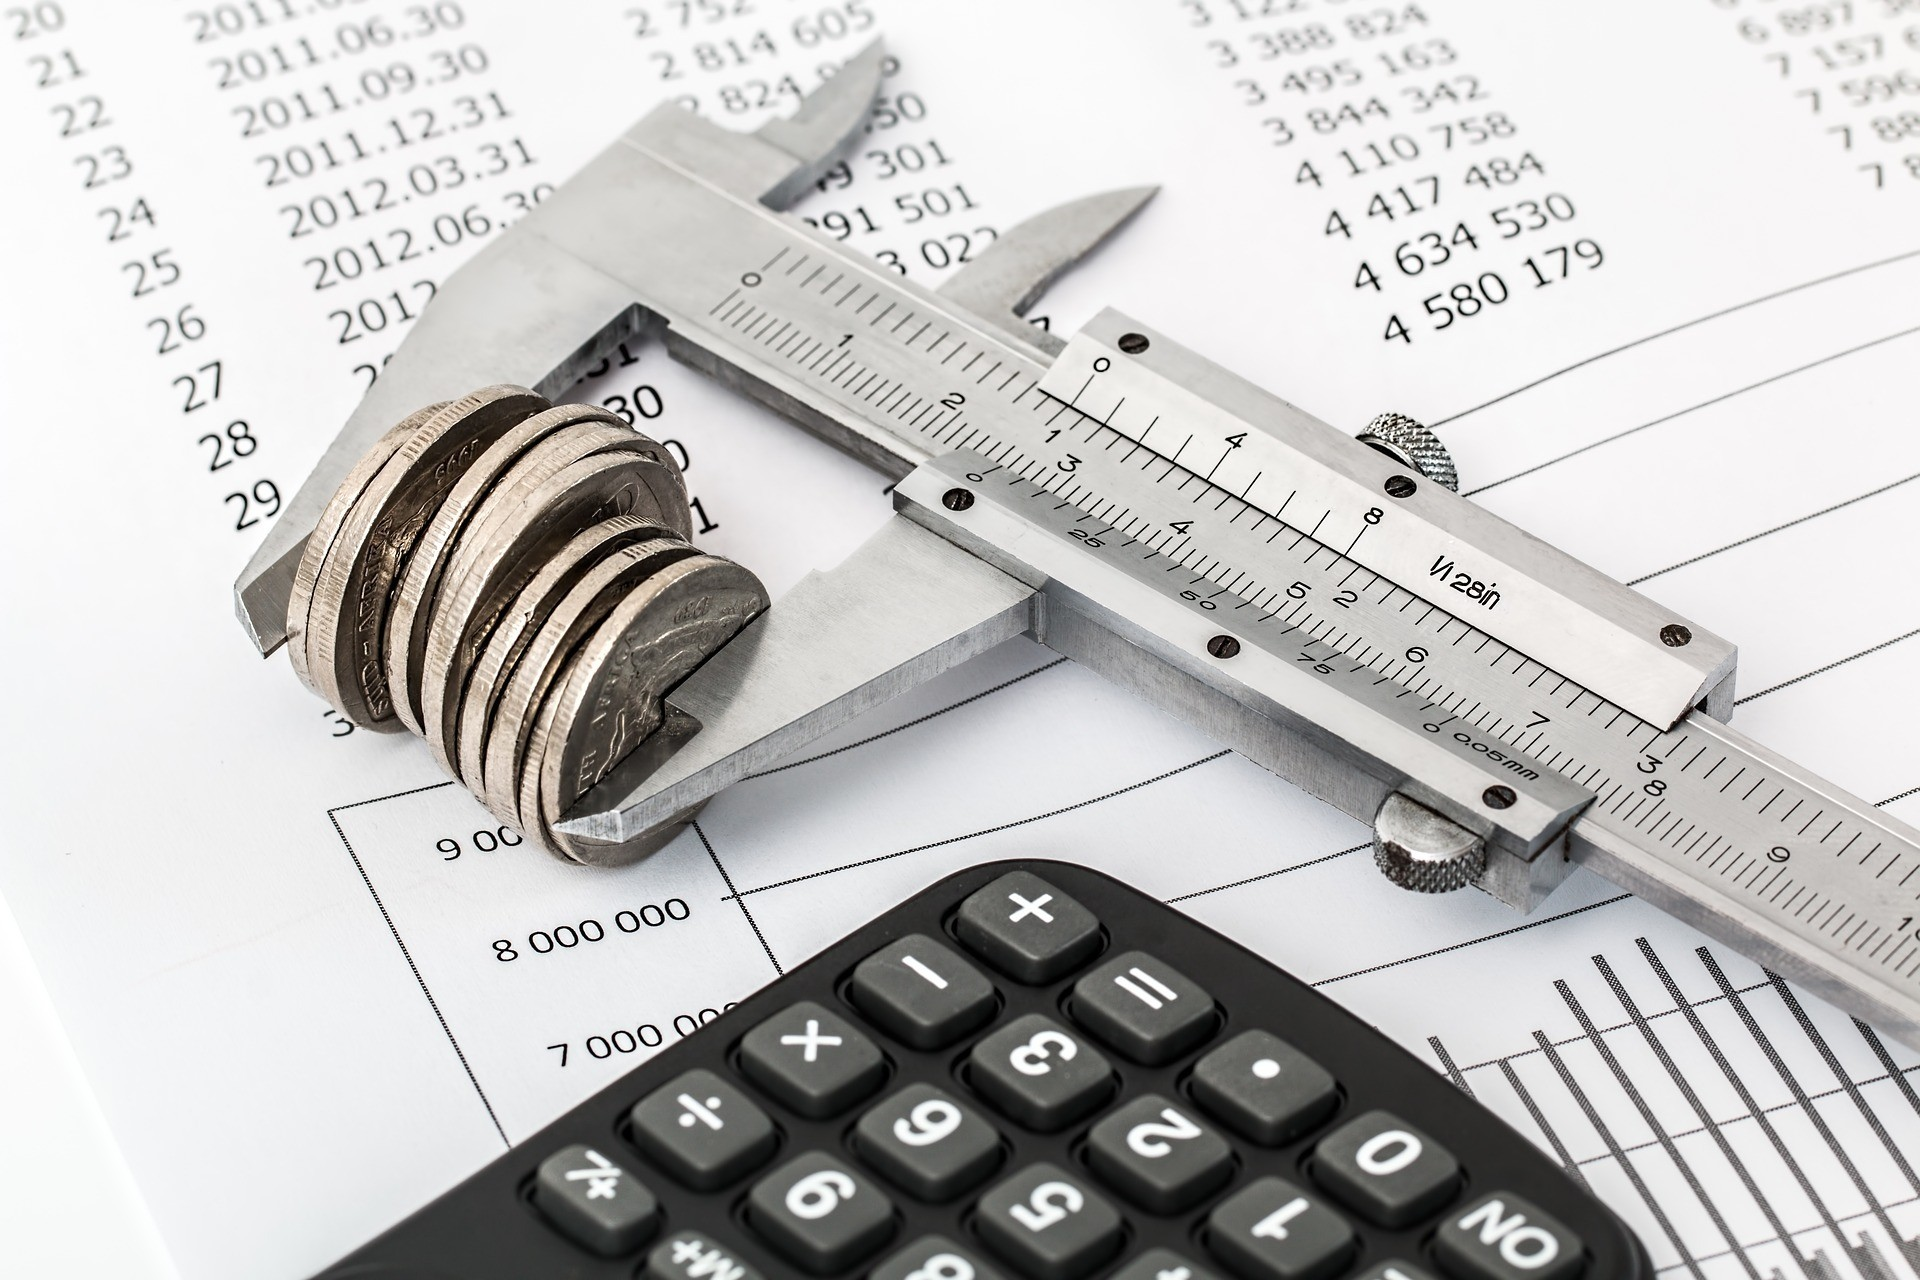 An image depicting a micrometer, some cash, a calculator and a page of figures.